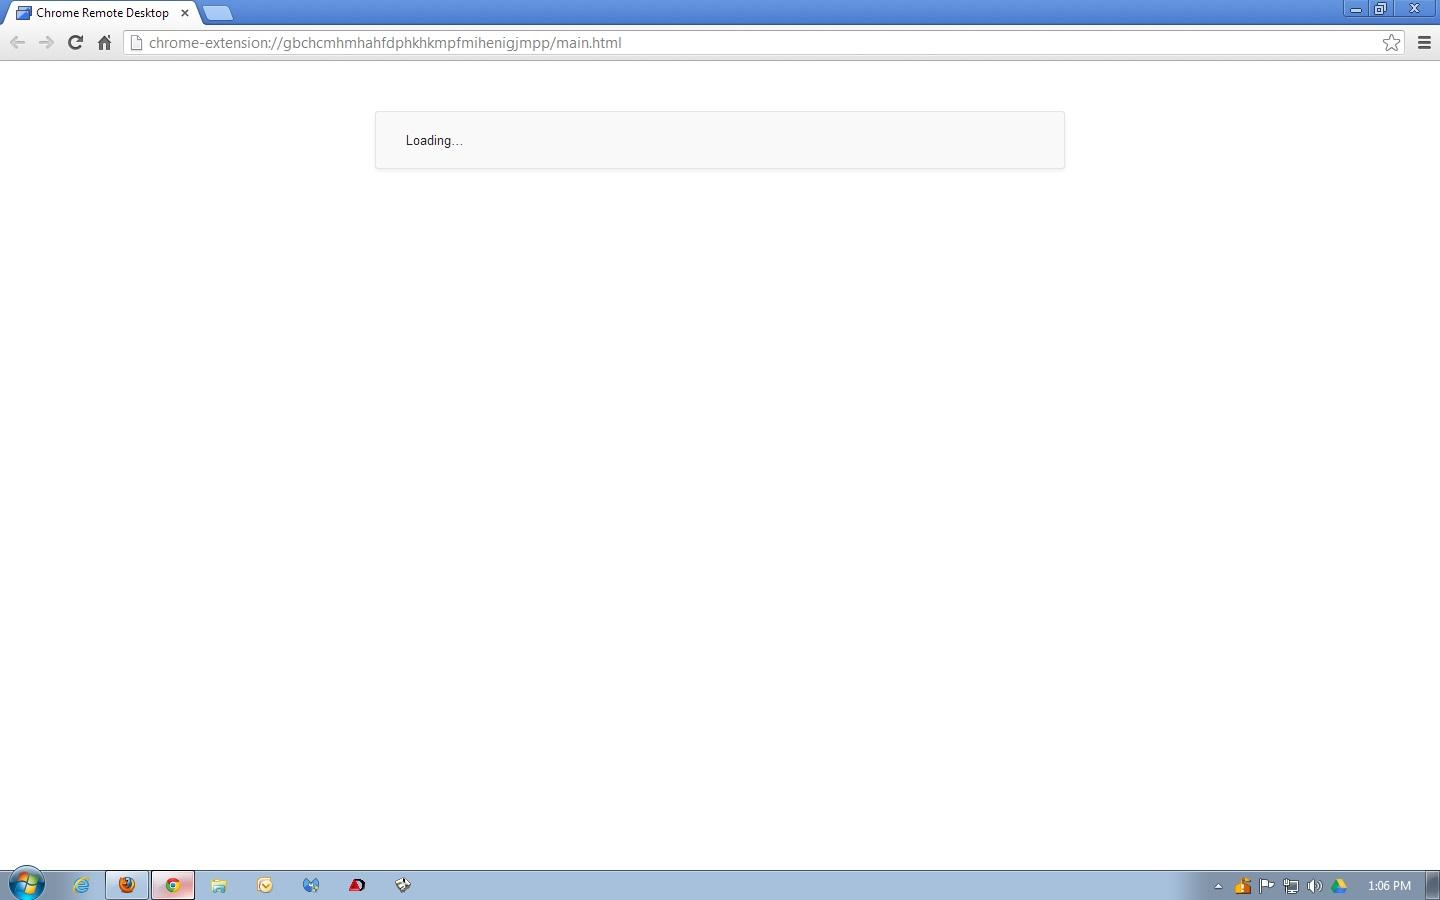 Chrome Remote Desktop not working as usual - Google Chrome Help